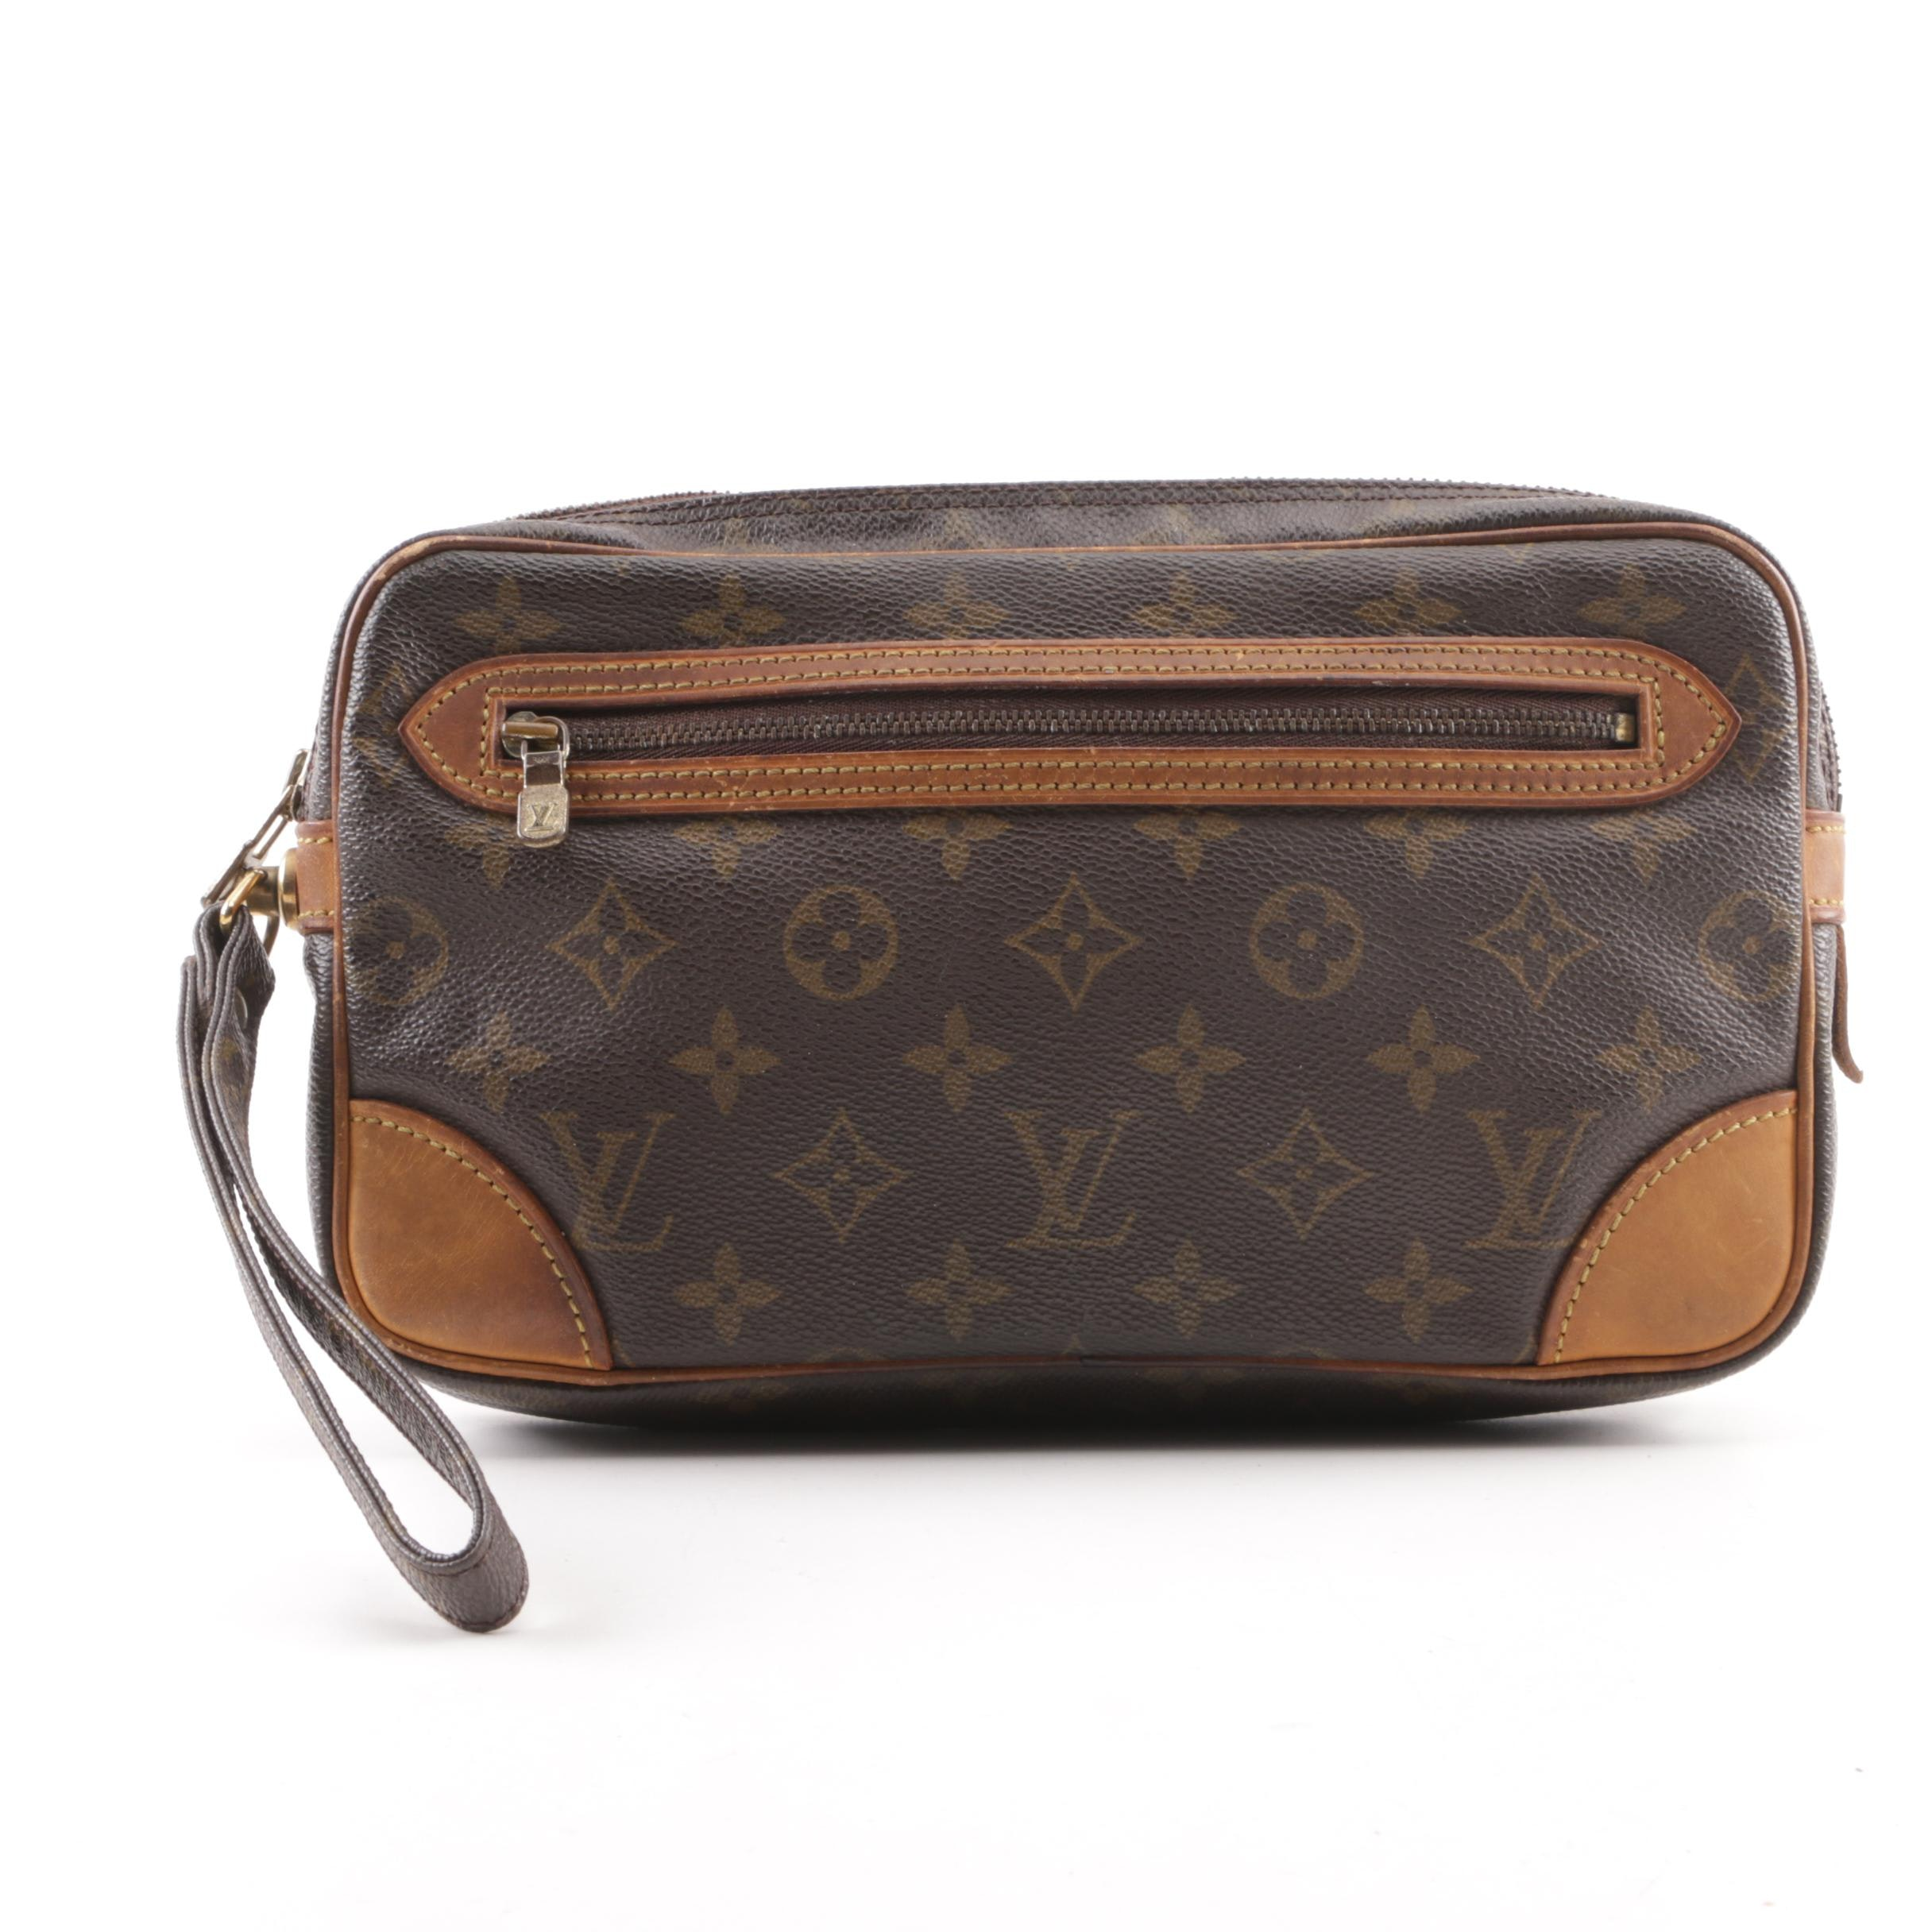 1990 Louis Vuitton Marly Dragonne Monogram Canvas Wristlet